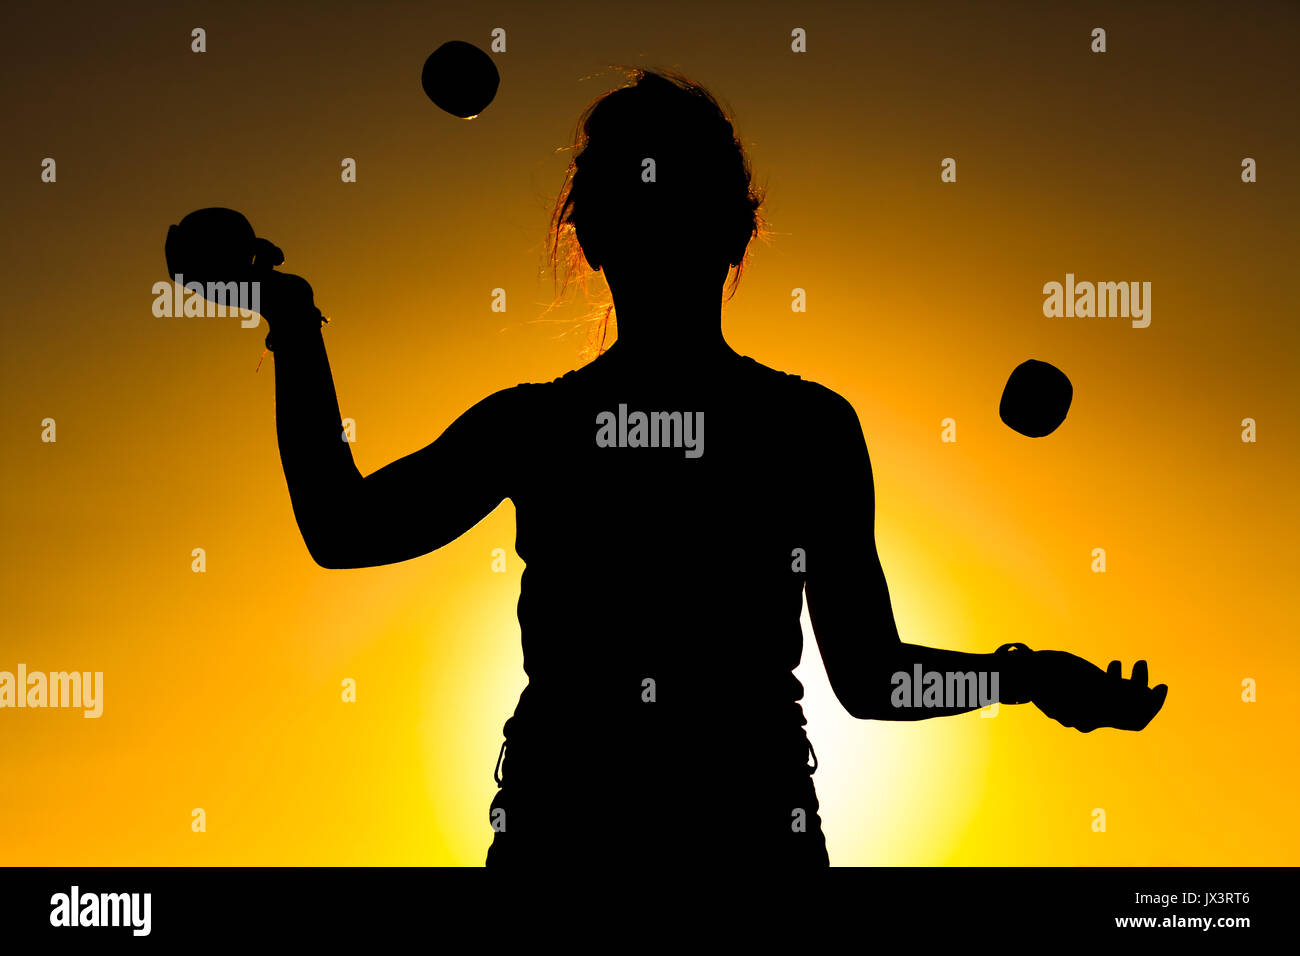 Silhouette of a Woman Juggling with Balls at Sunset - Stock Image